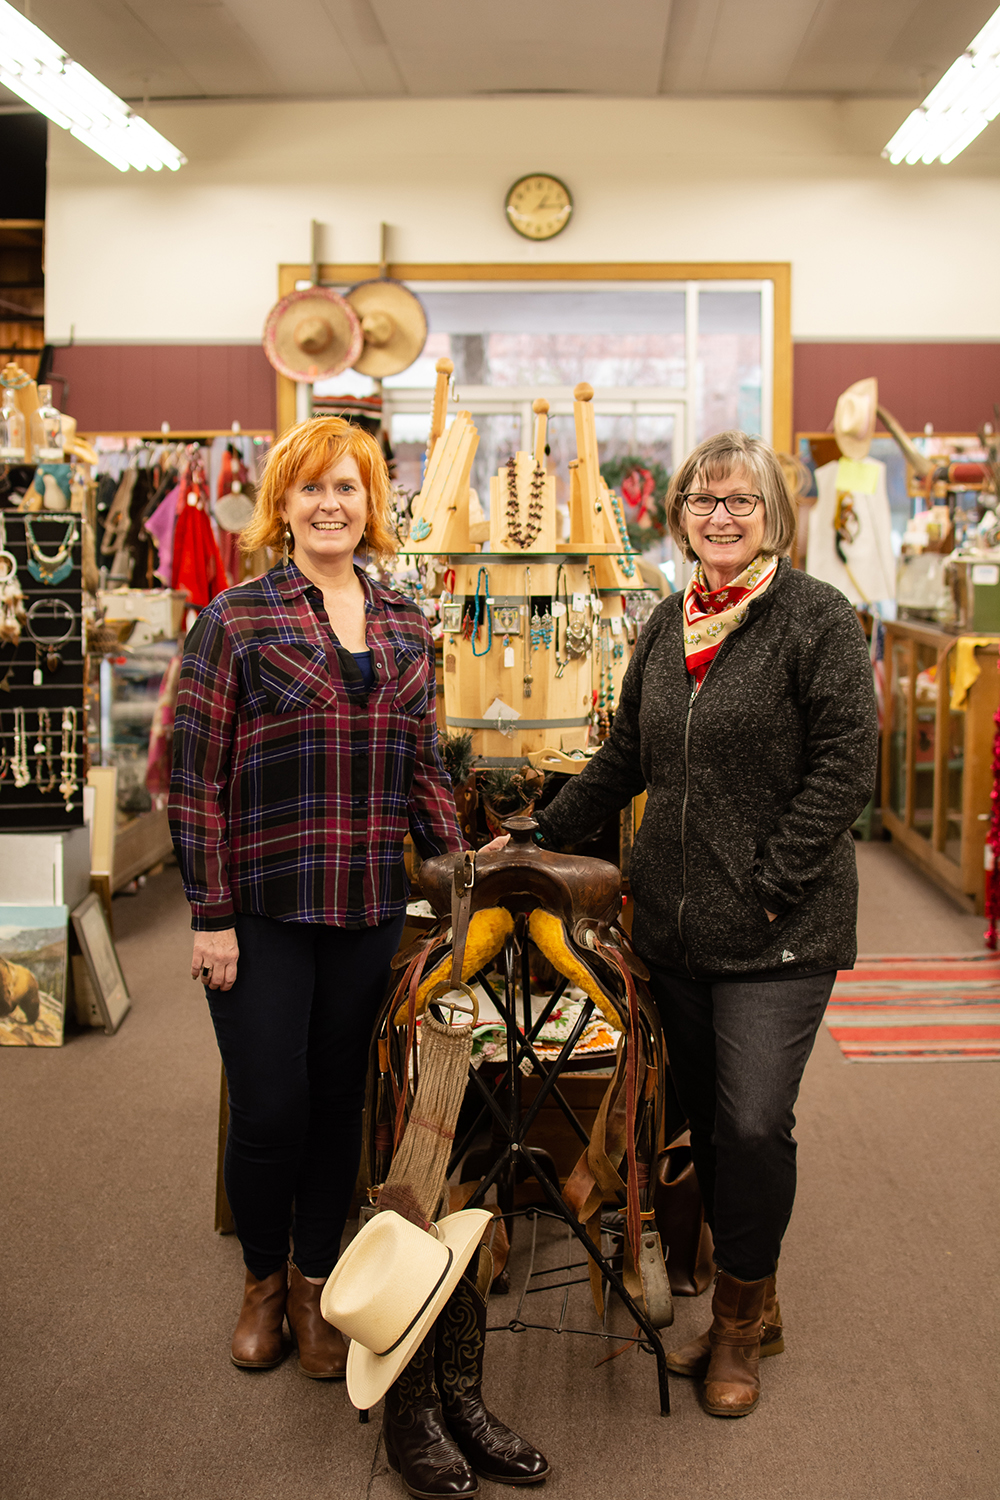 two women standing next to a saddle